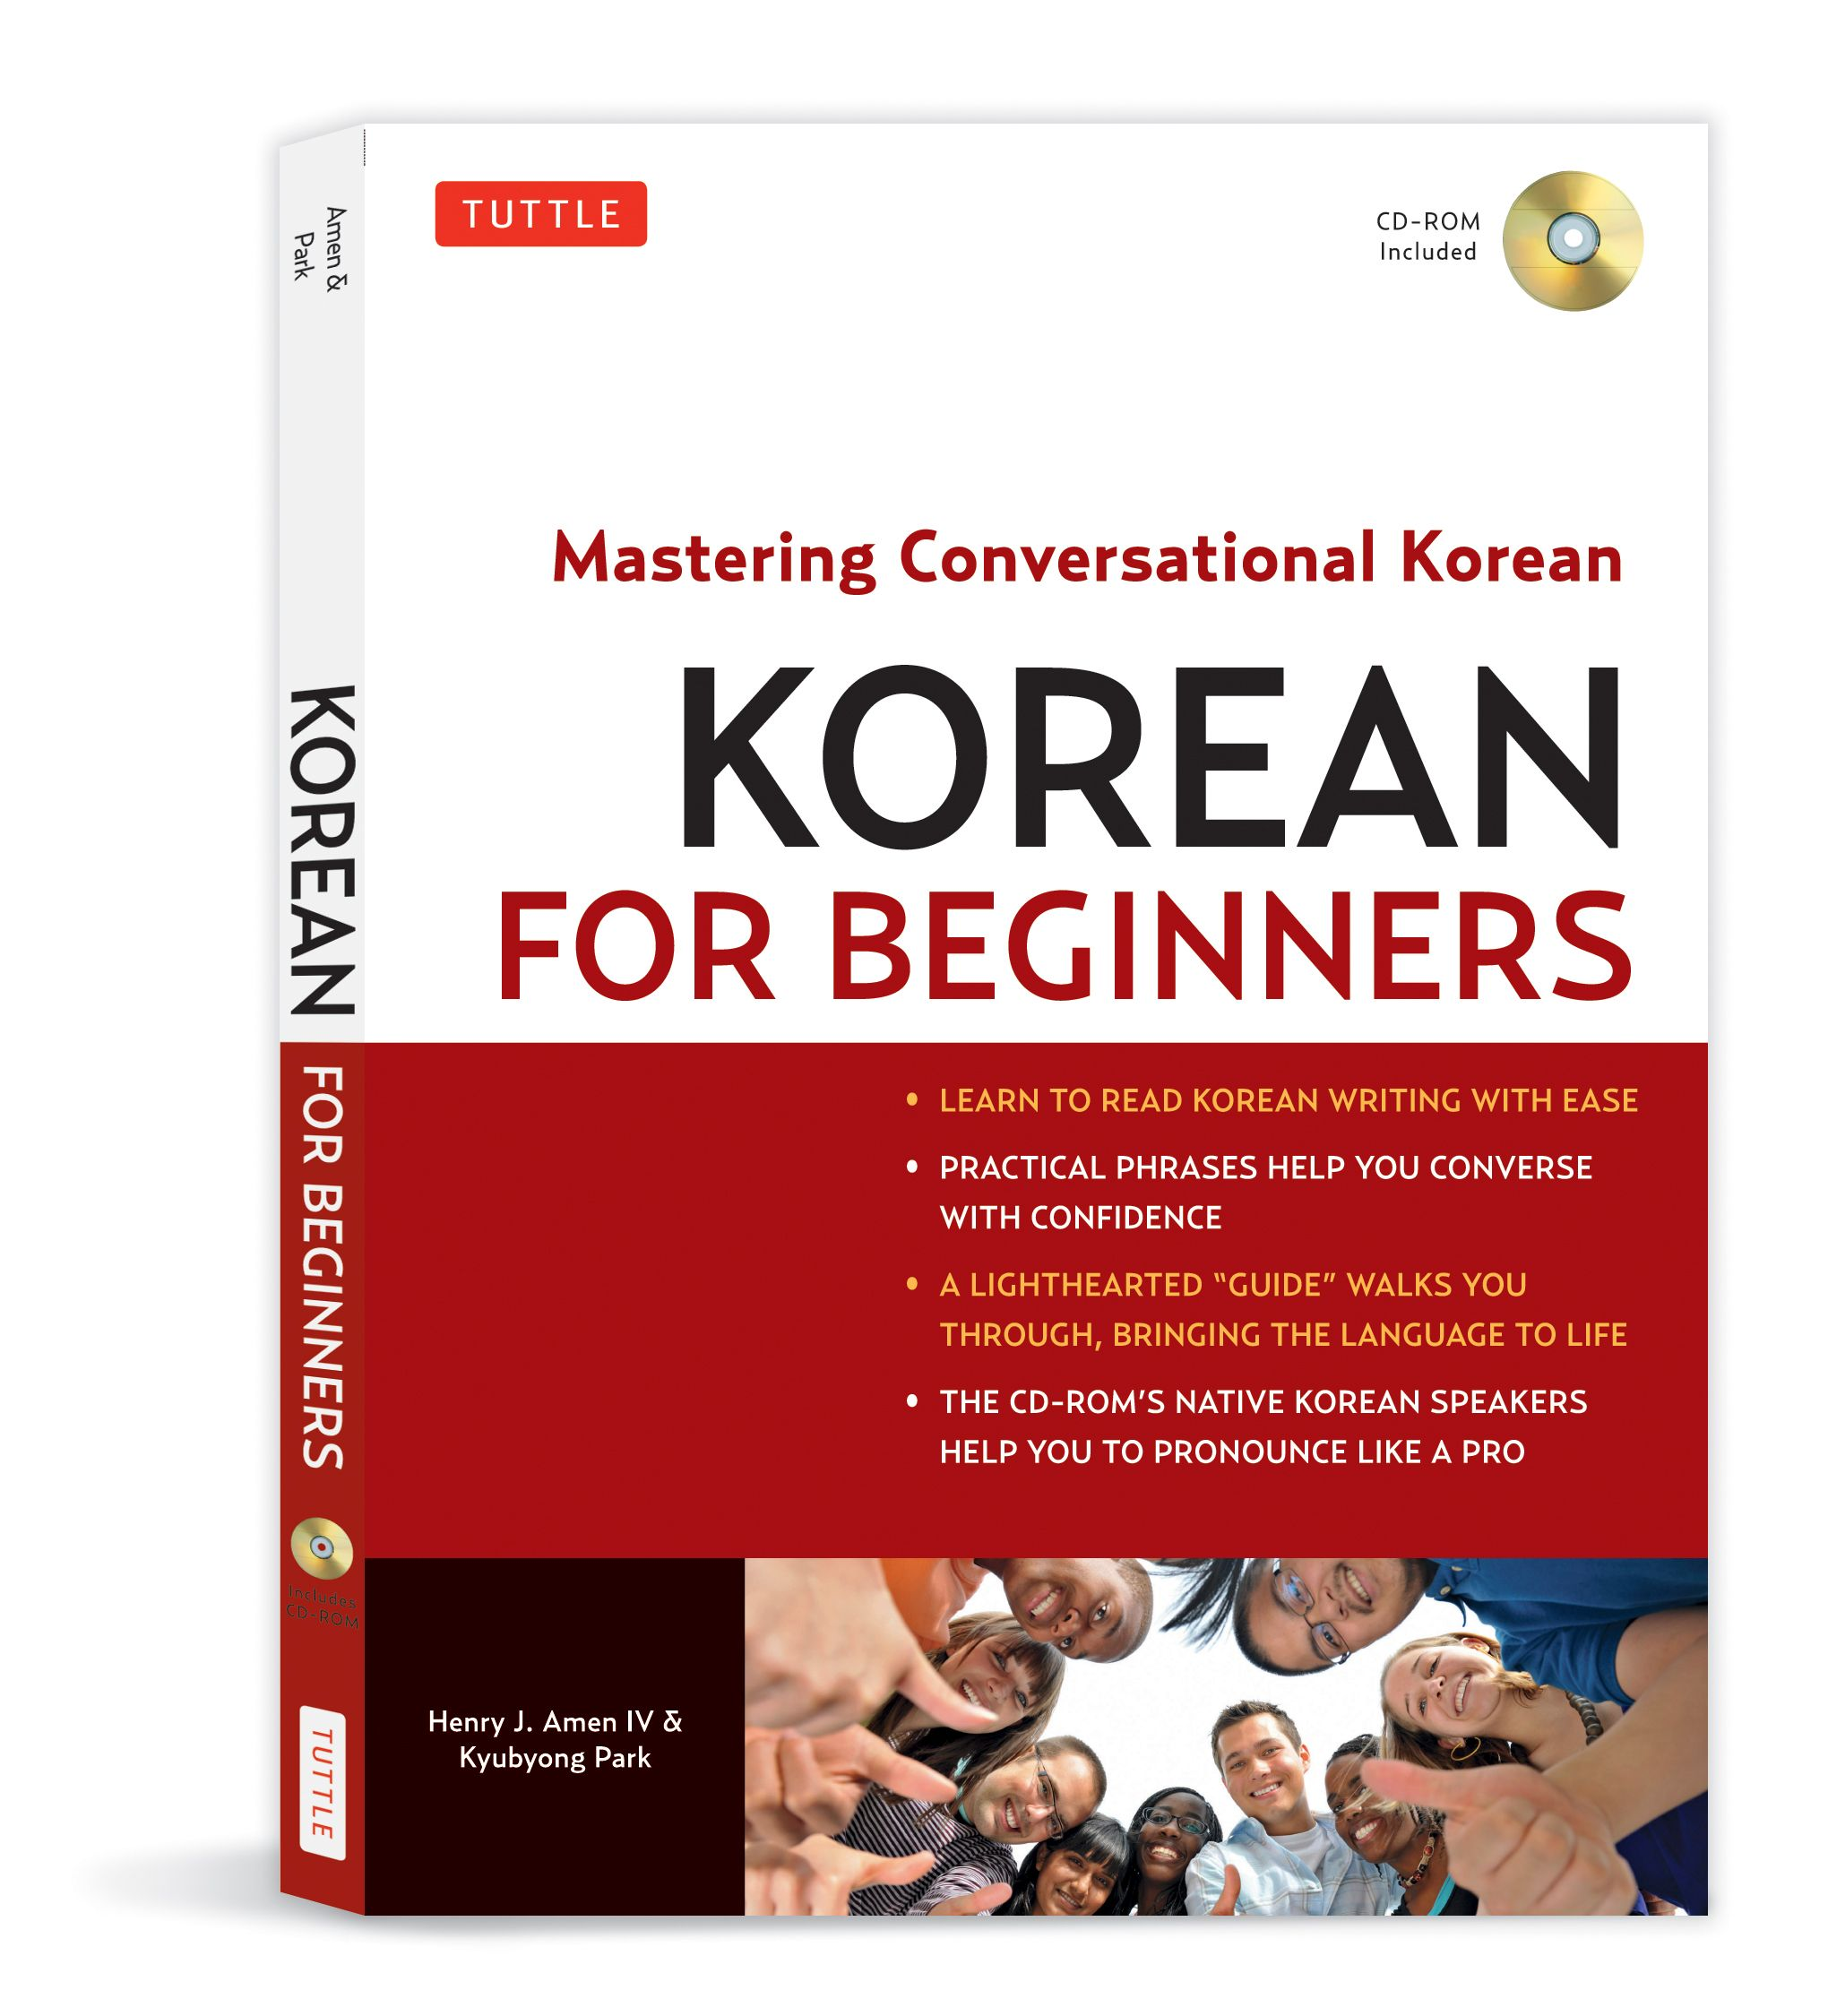 The Best Way To Learn Korean This Book Uses A Lighthearted